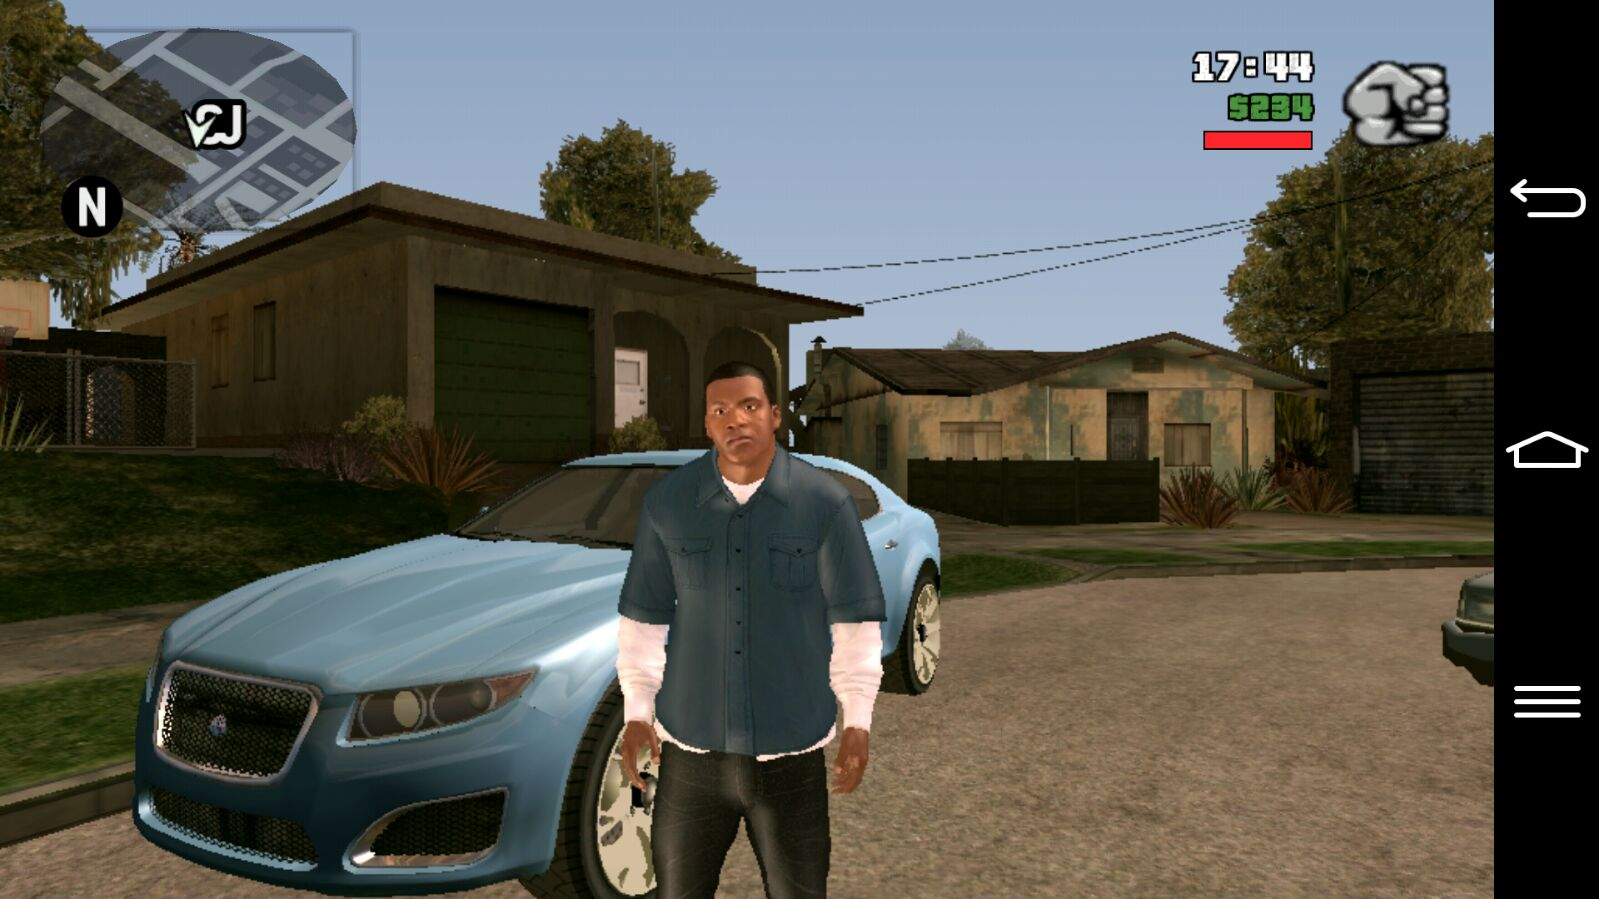 gta v apk free download for android no survey